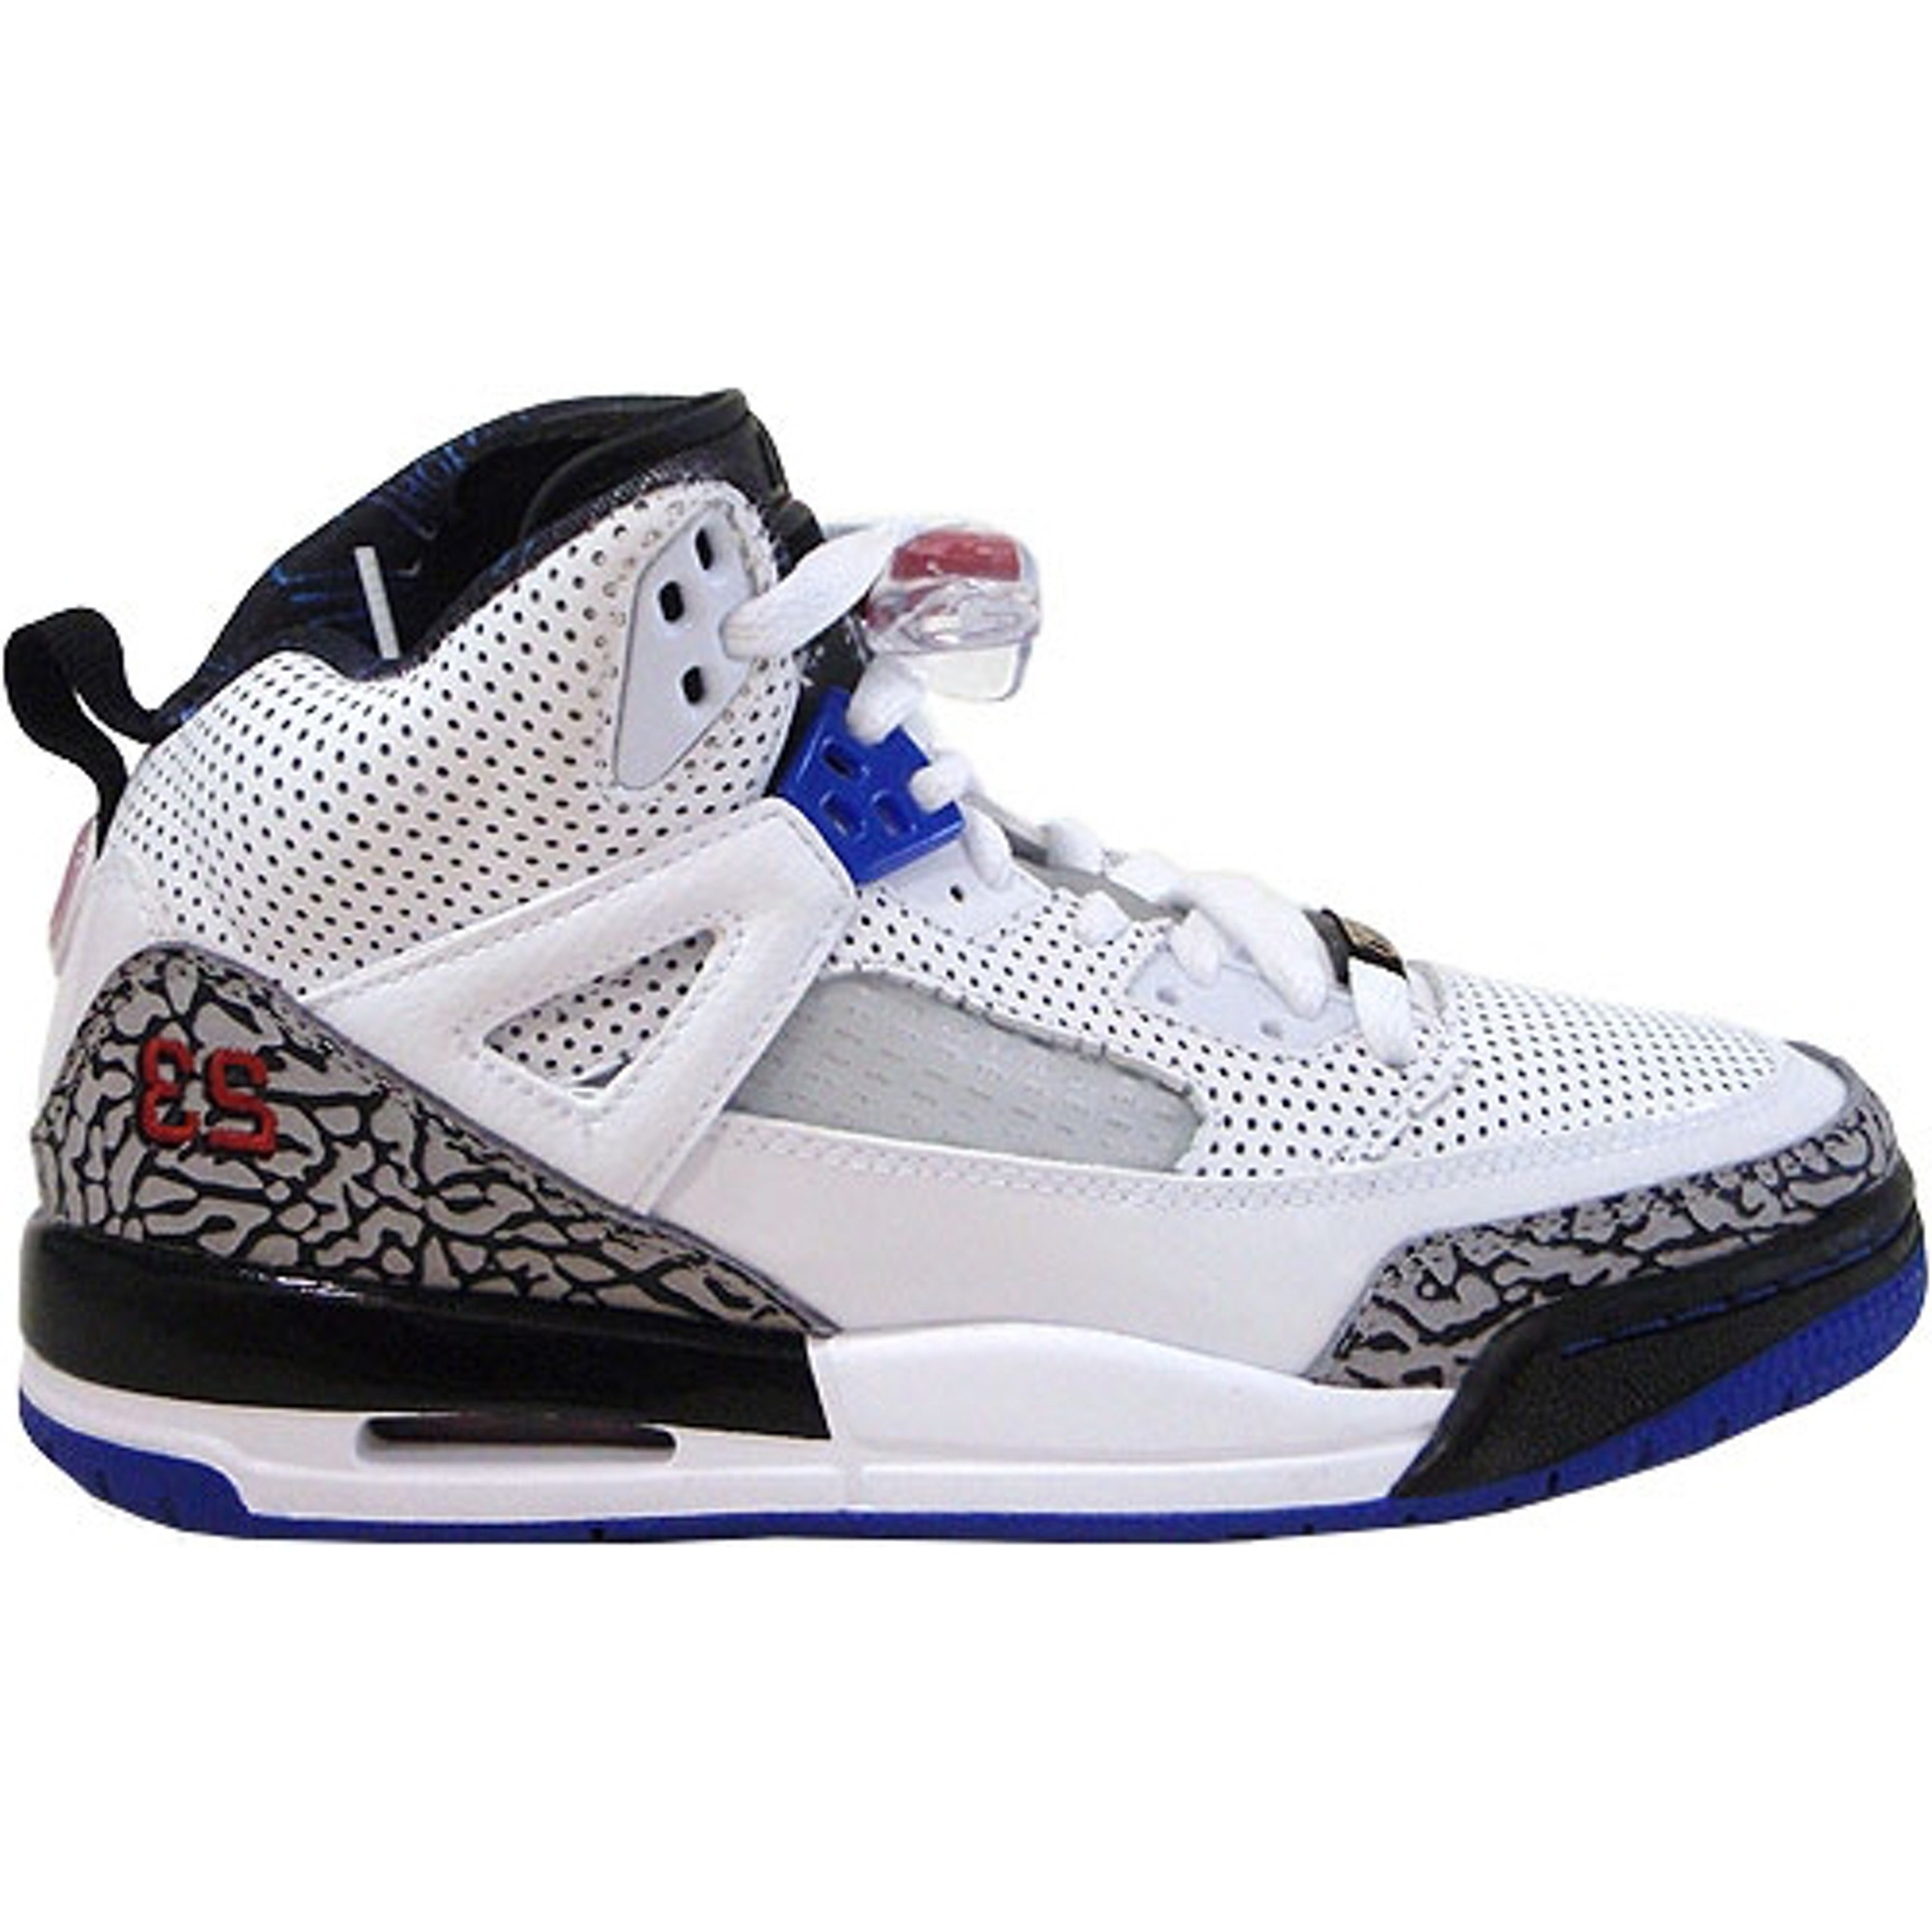 Jordan Spiz'ike Grape (315371-102)